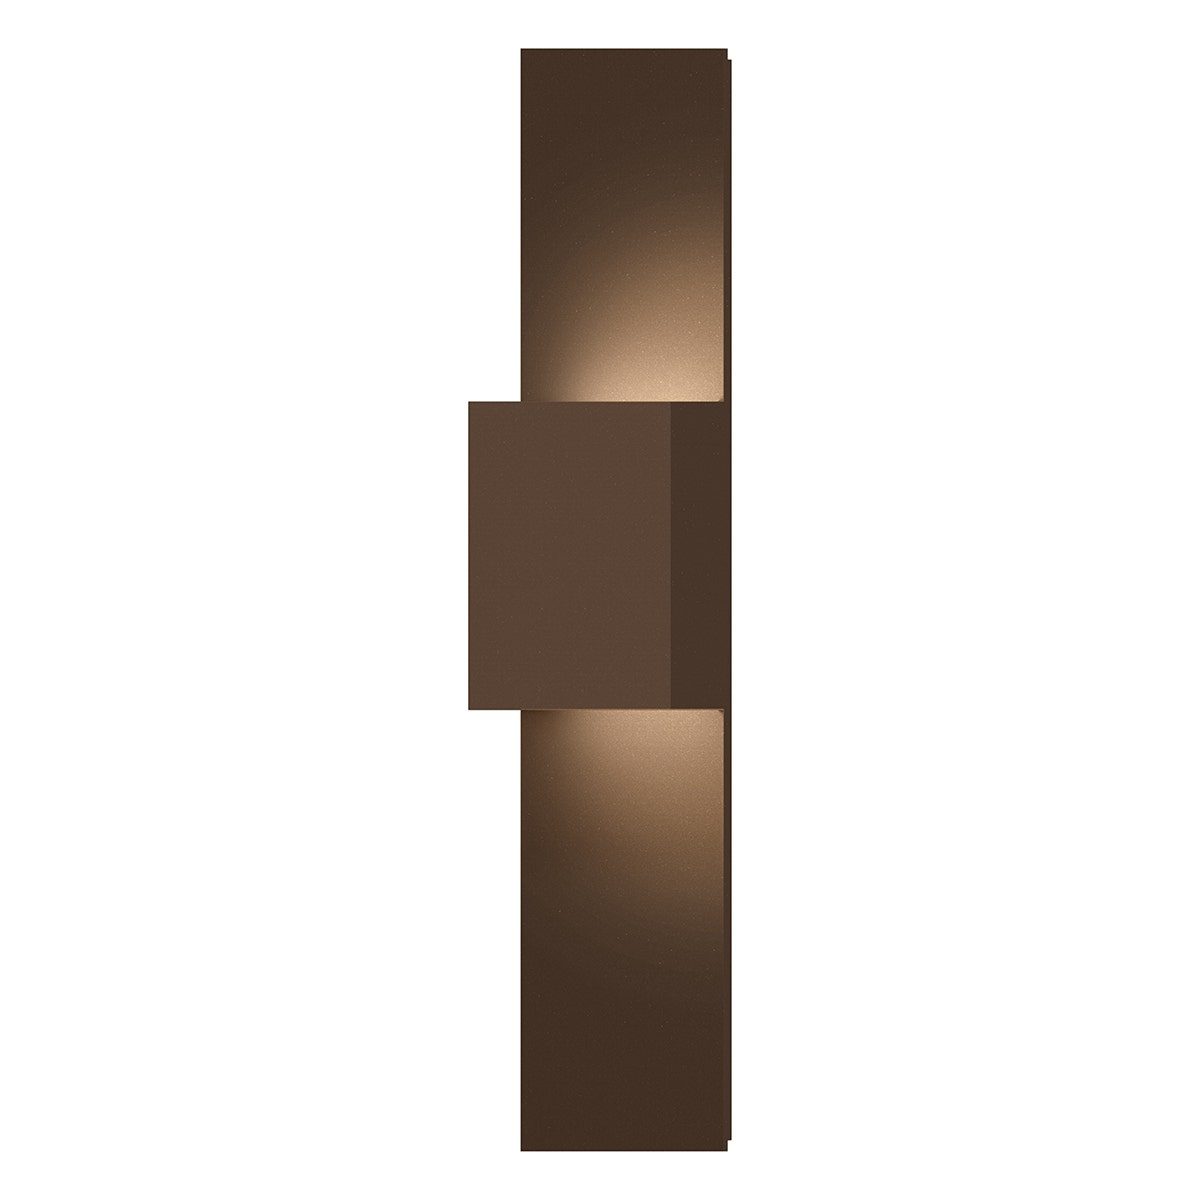 Flat Box Up/Down LED Panel Sconce Outdoor